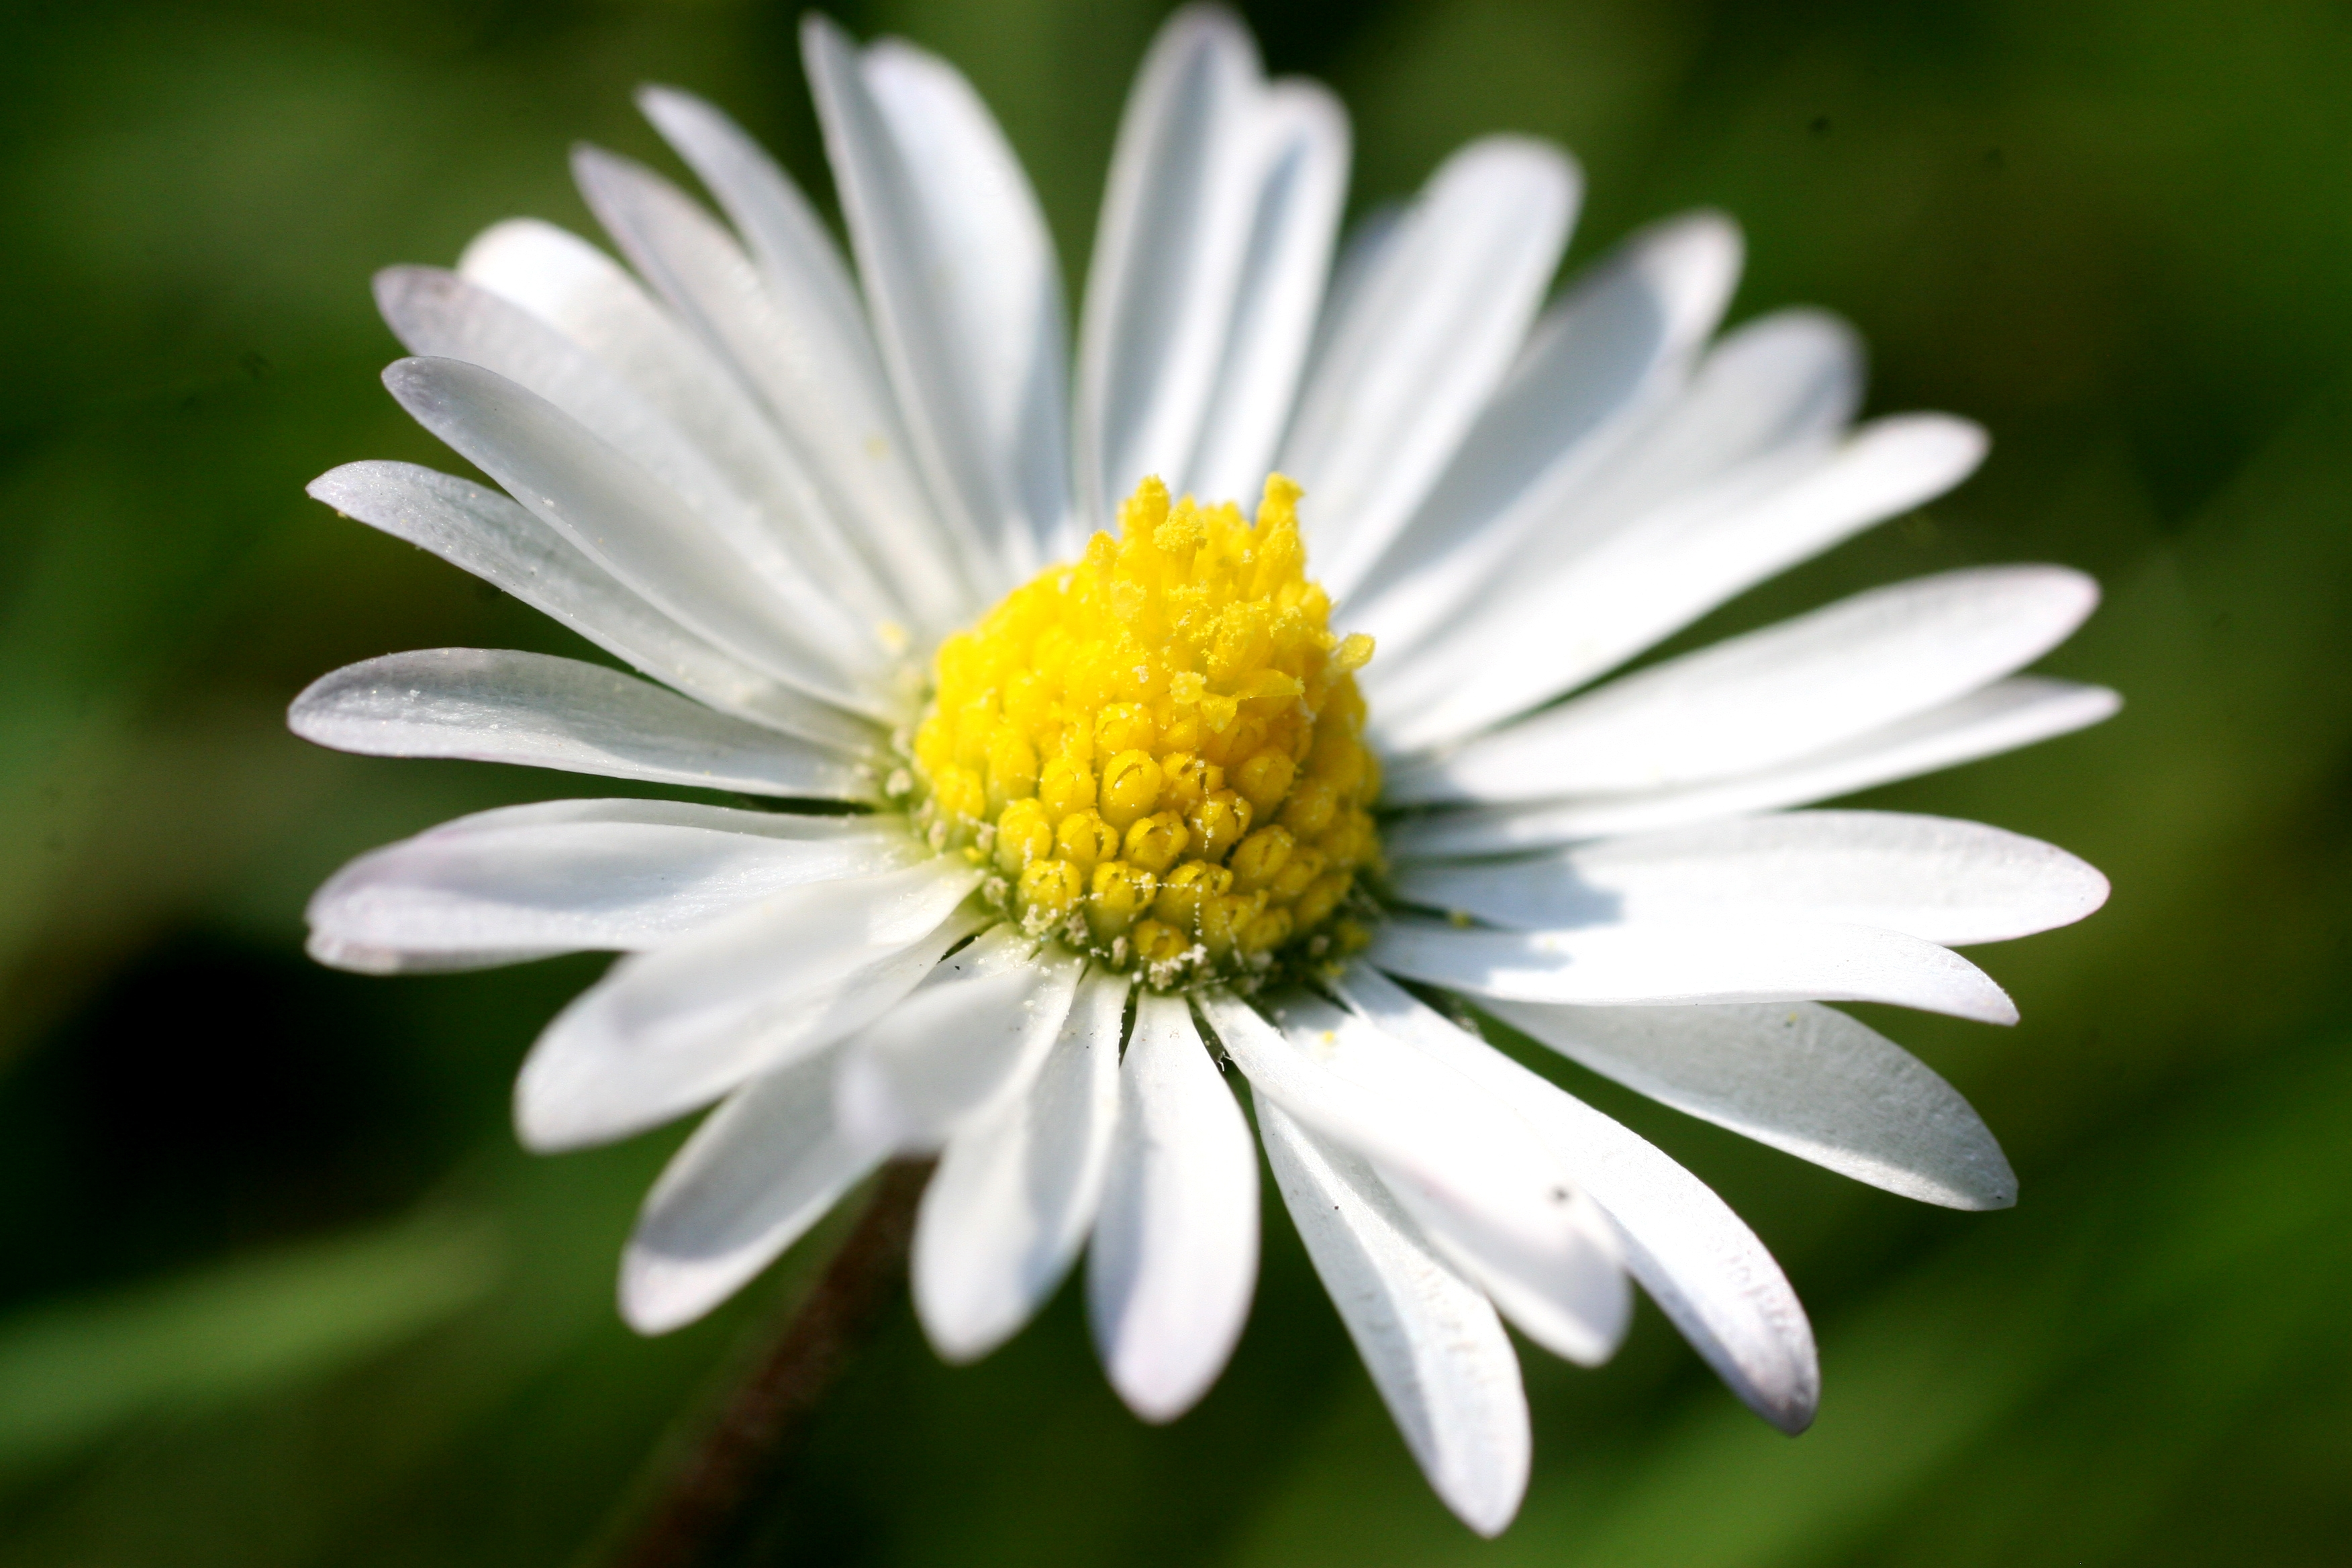 150570 download wallpaper Macro, Chamomile, Camomile, Flower, Small, Petals screensavers and pictures for free